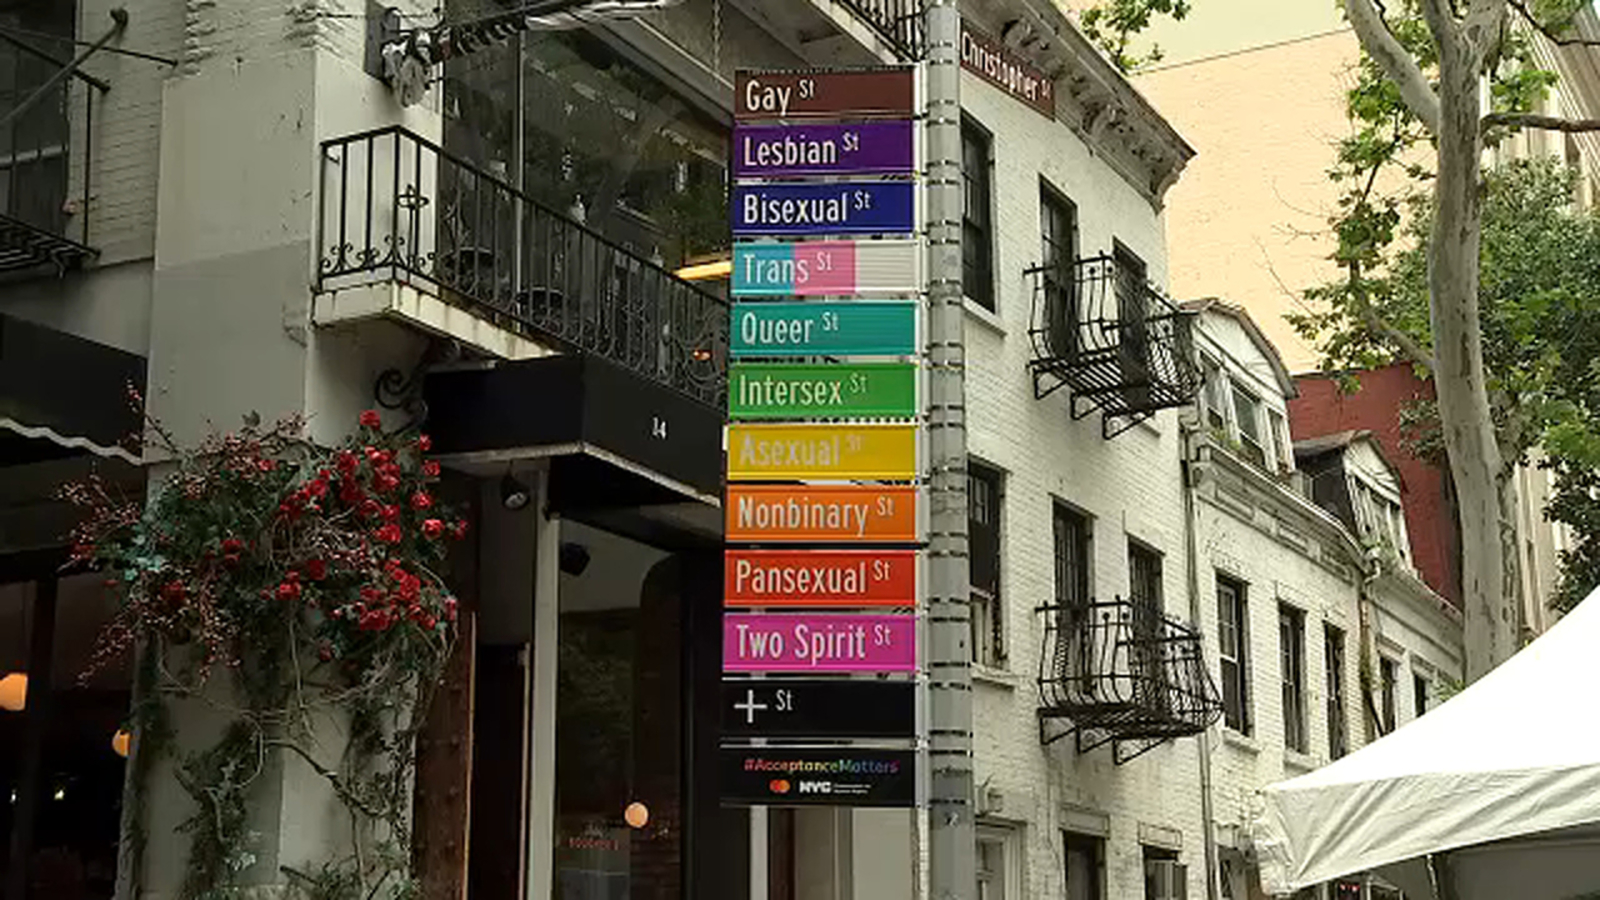 Gay Street in Greenwich Village renamed 'Acceptance Street' for Pride Month